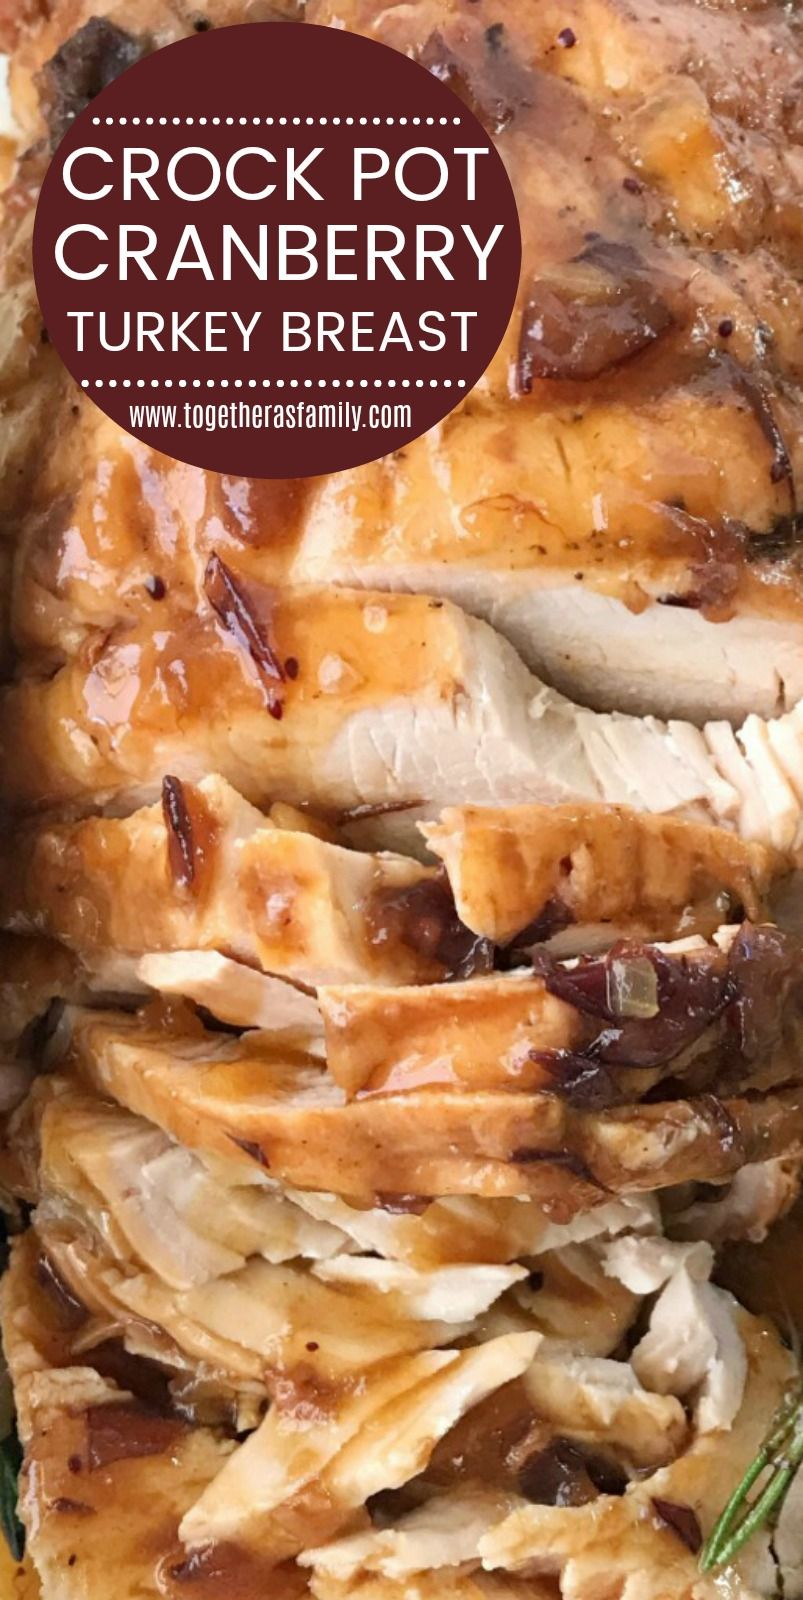 Crock Pot Turkey Breast Boneless  Turkey Recipe  Turkey Breast with Cranberry Gravy  Crock Pot Turkey Breast only needs 4 ingredients and you wont believe how easy it is...